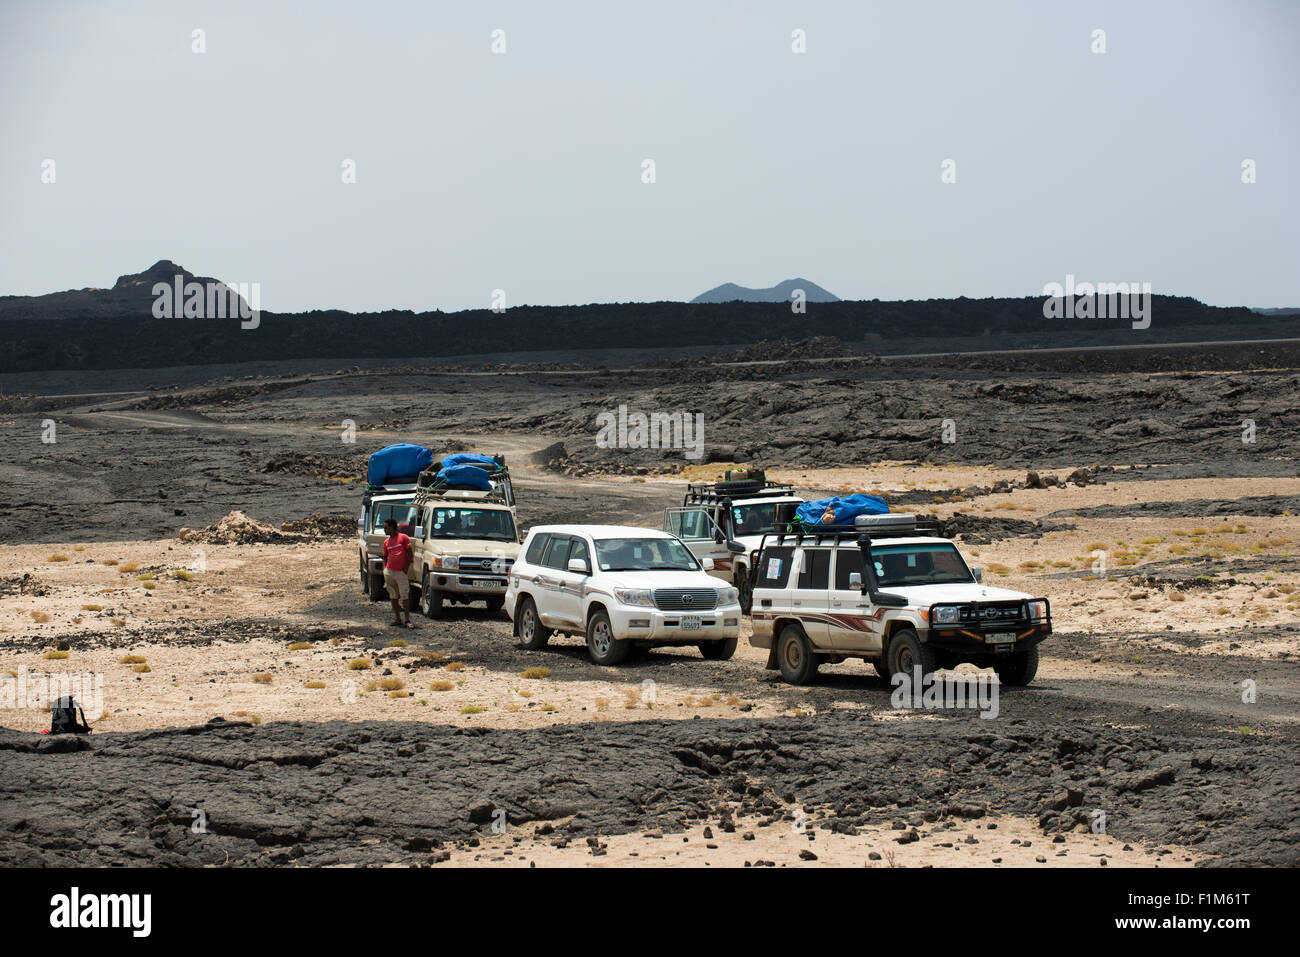 An expedition in the Danakil Depression in Ethiopia. - Stock Image